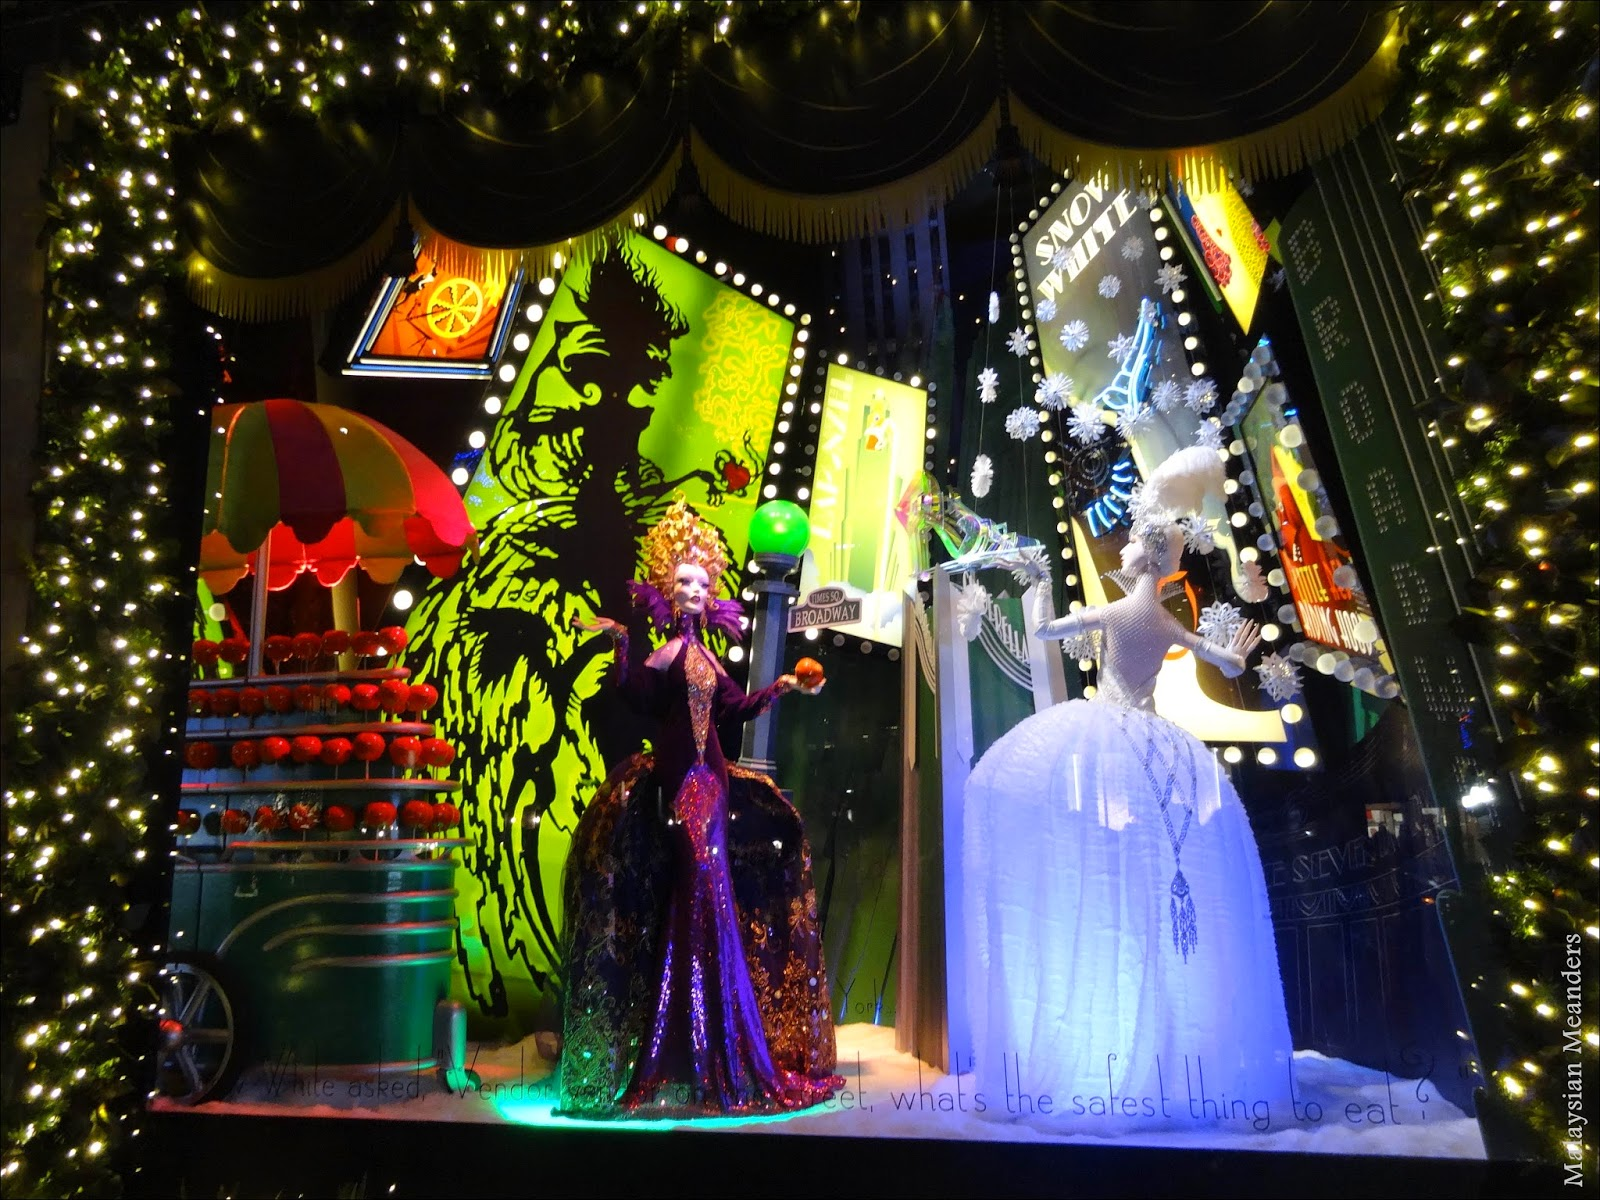 Malaysian Meanders: Saks Fifth Avenue's Enchanting Holiday